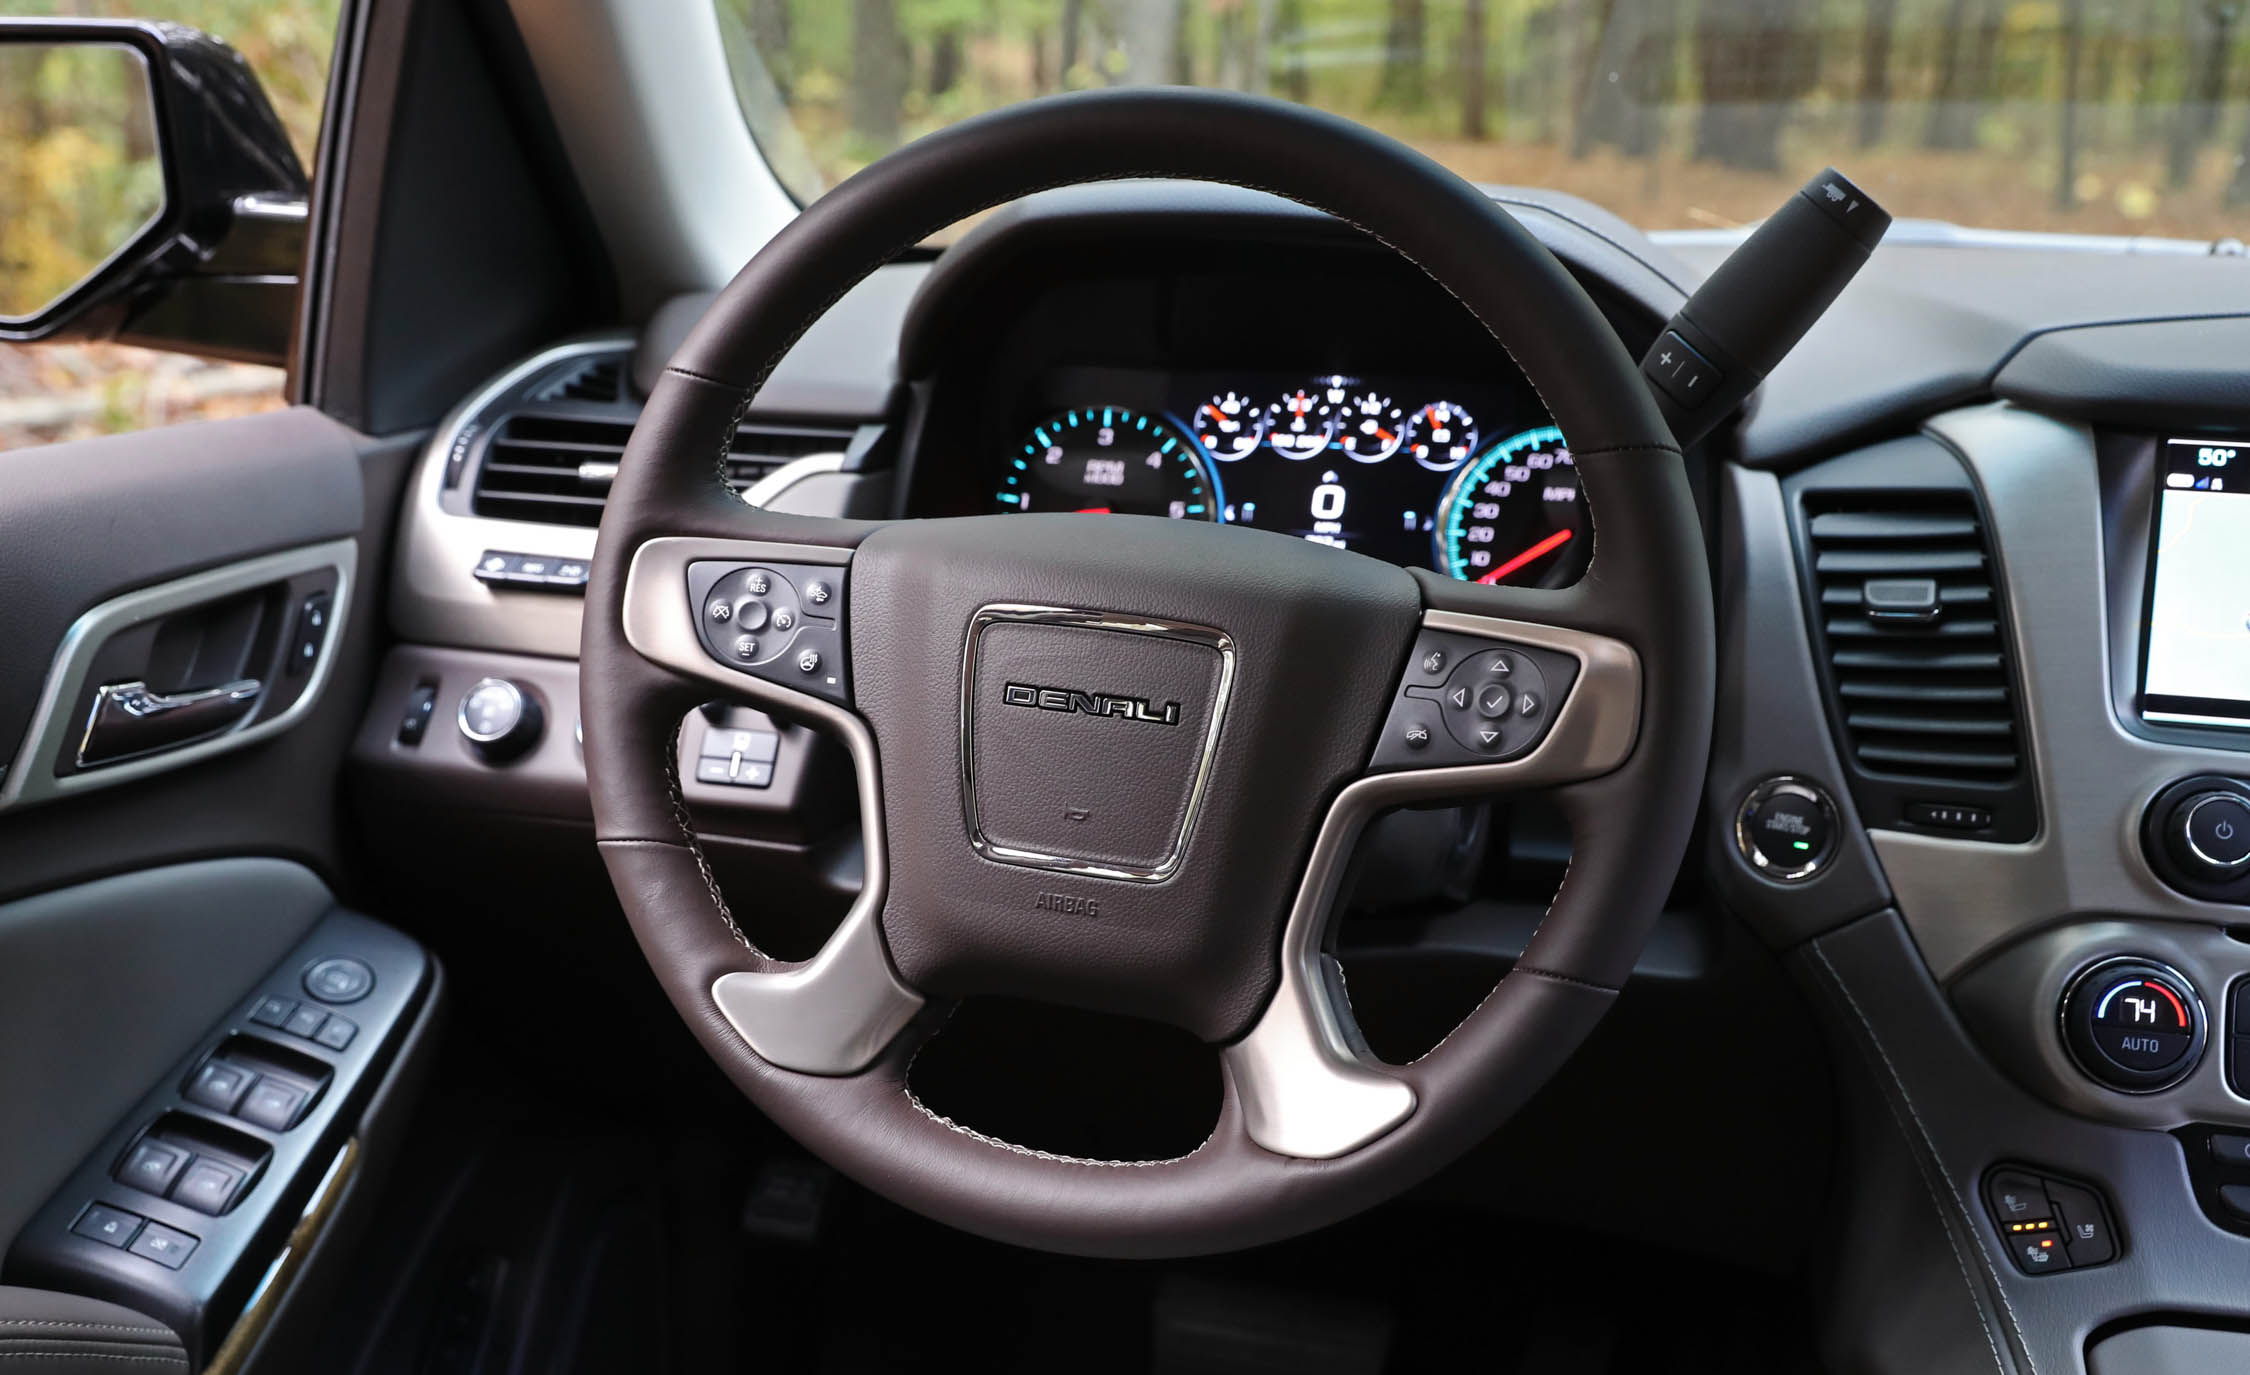 2017 Gmc Yukon Xl Denali Interior View Driver Steering Wheel (Photo 23 of 26)